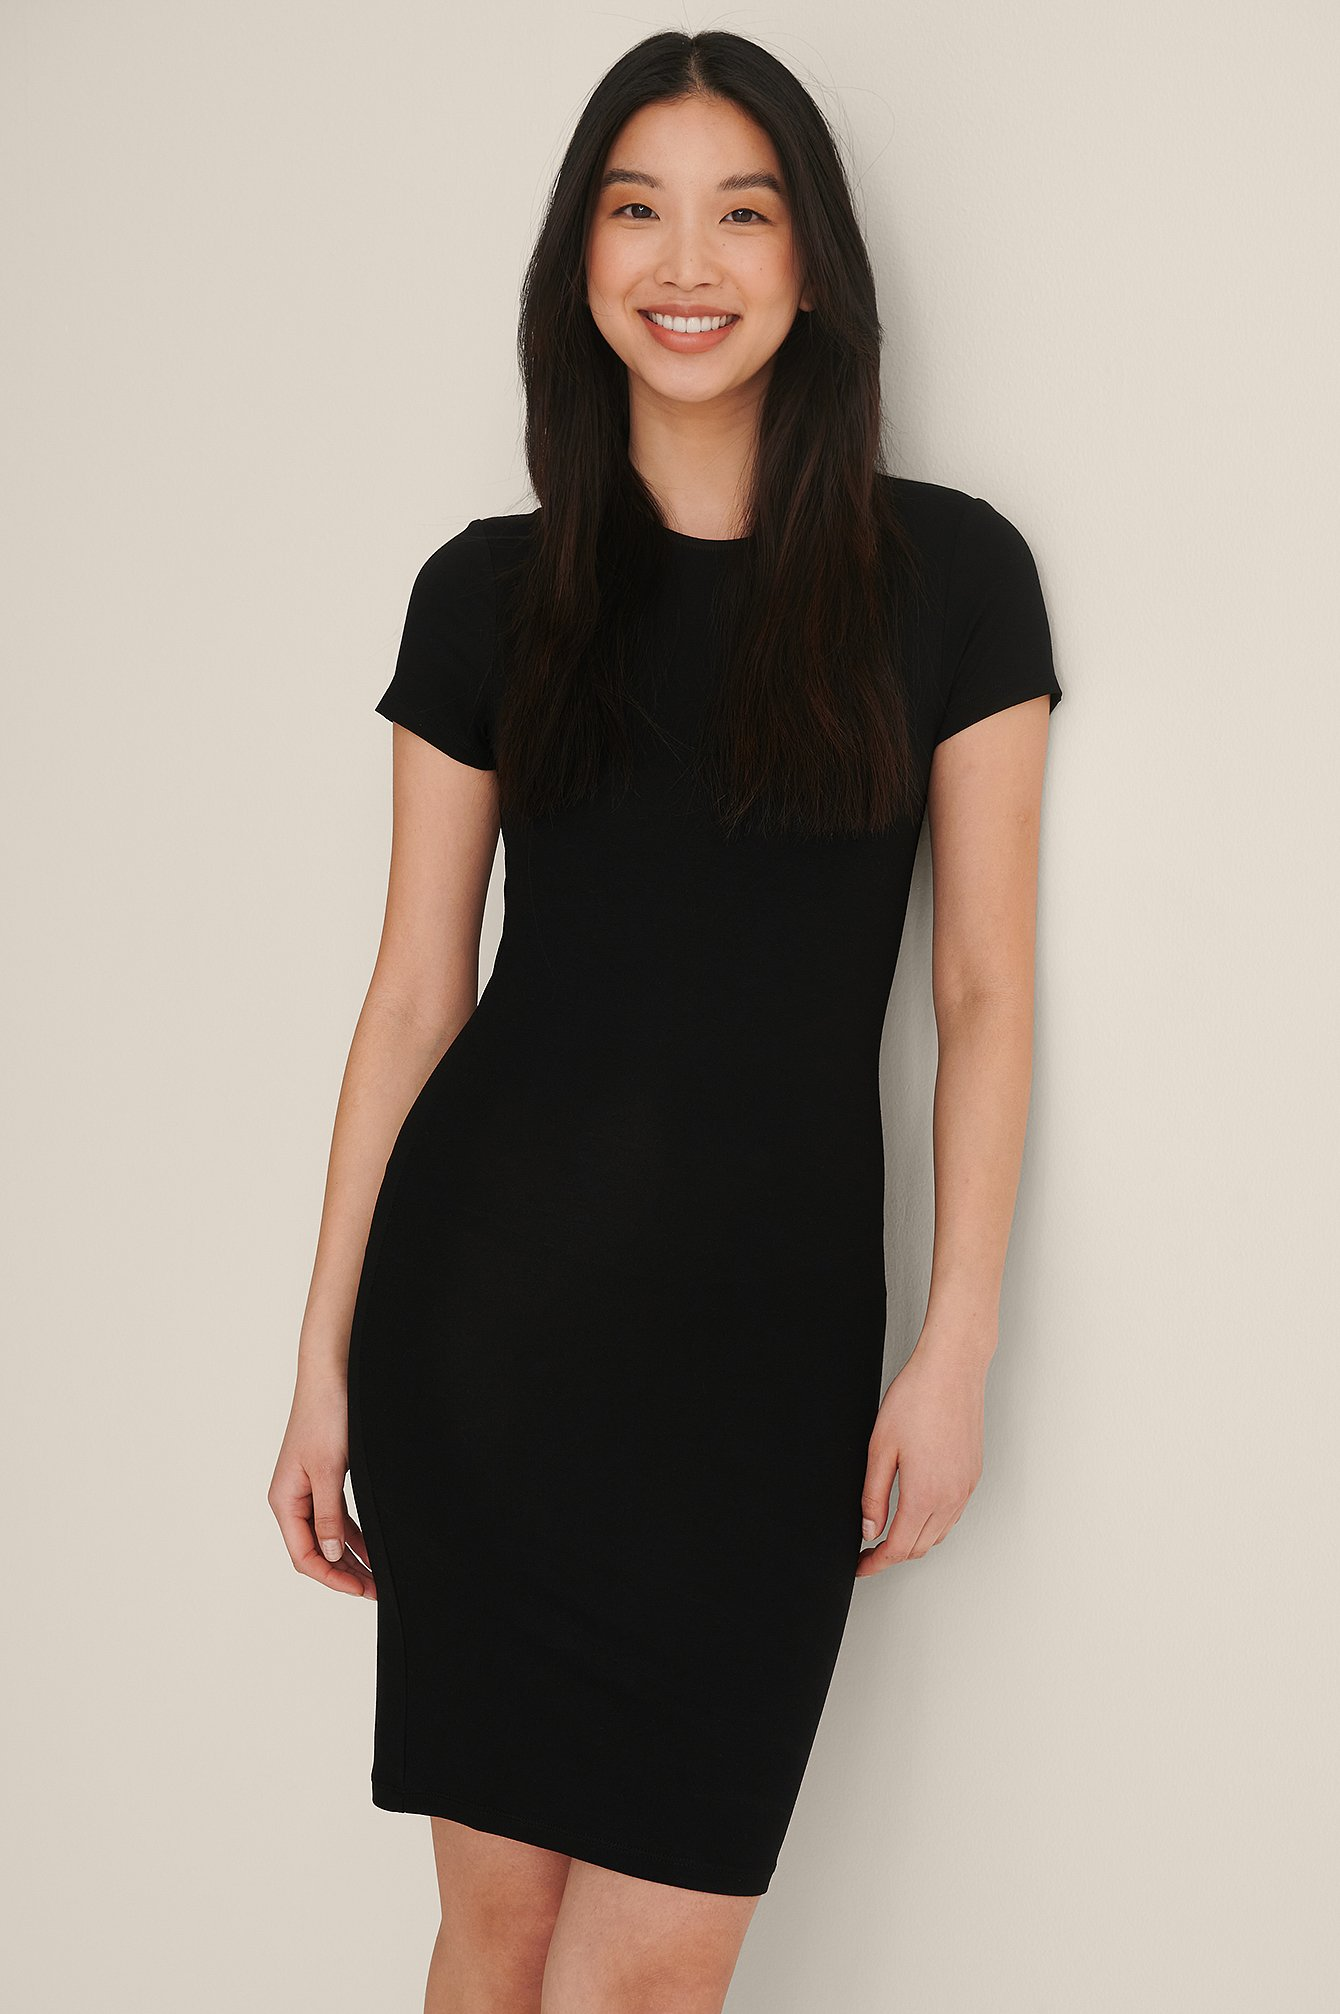 Black Tight T-Shirt Dress